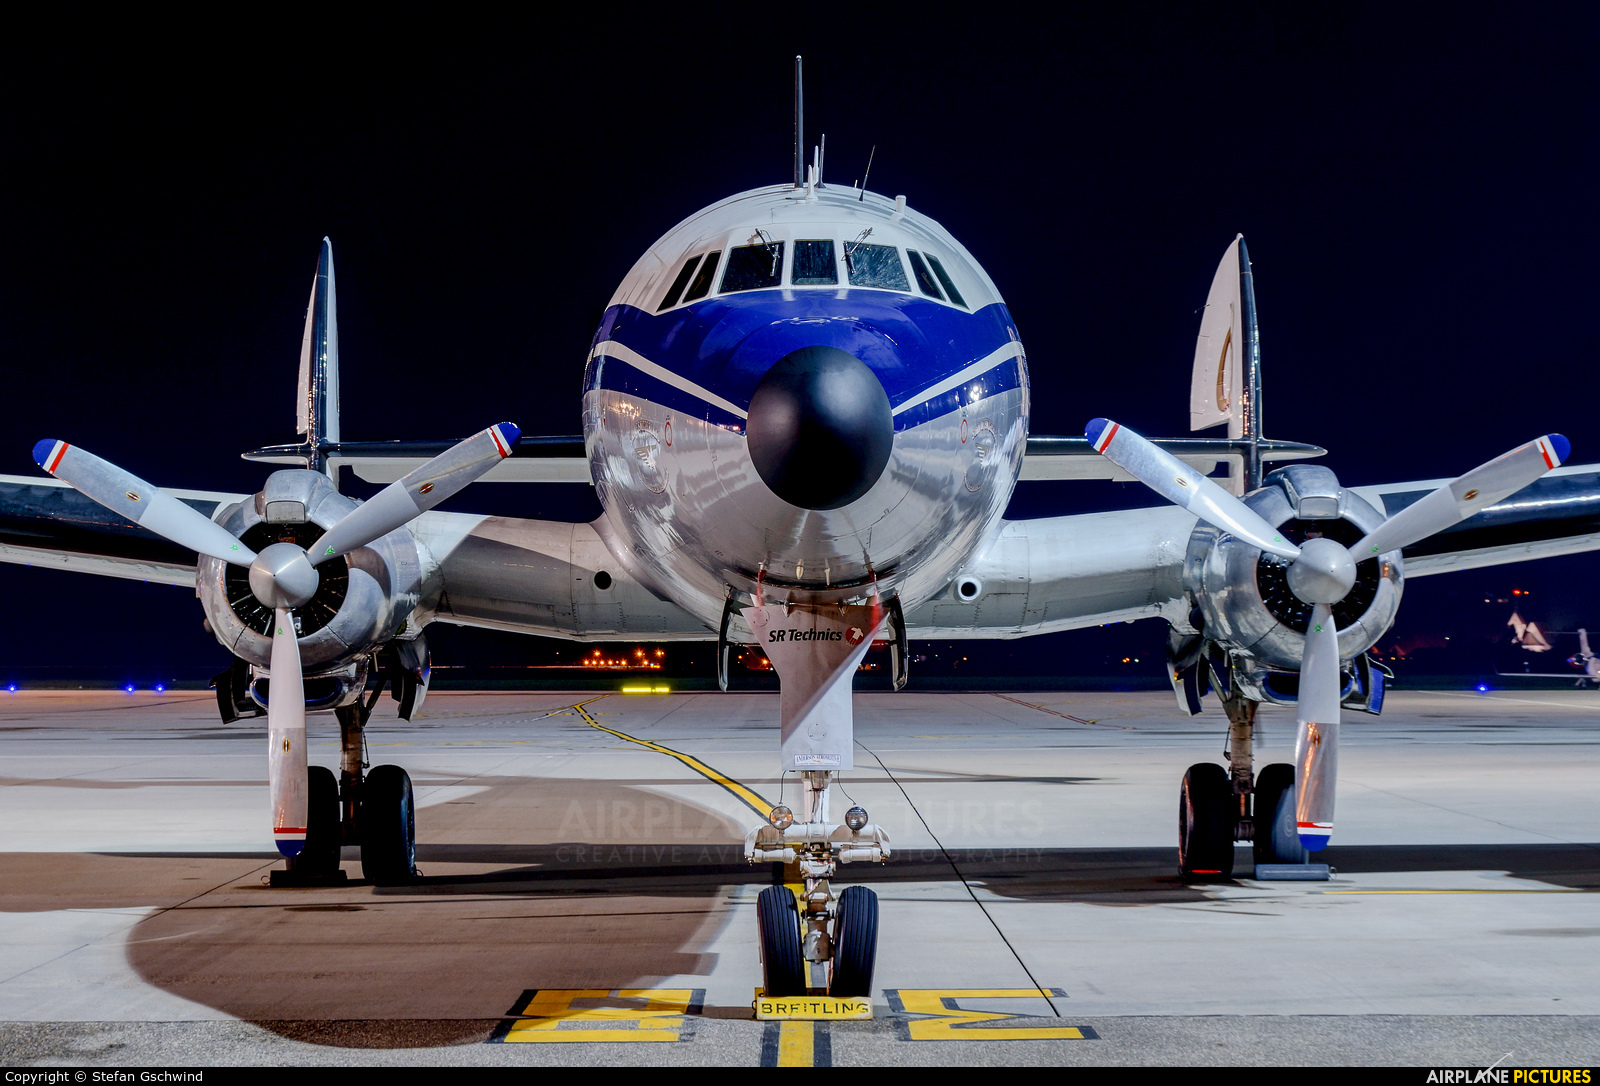 Super Constellation Flyers HB-RSC aircraft at Basel - Mulhouse- Euro